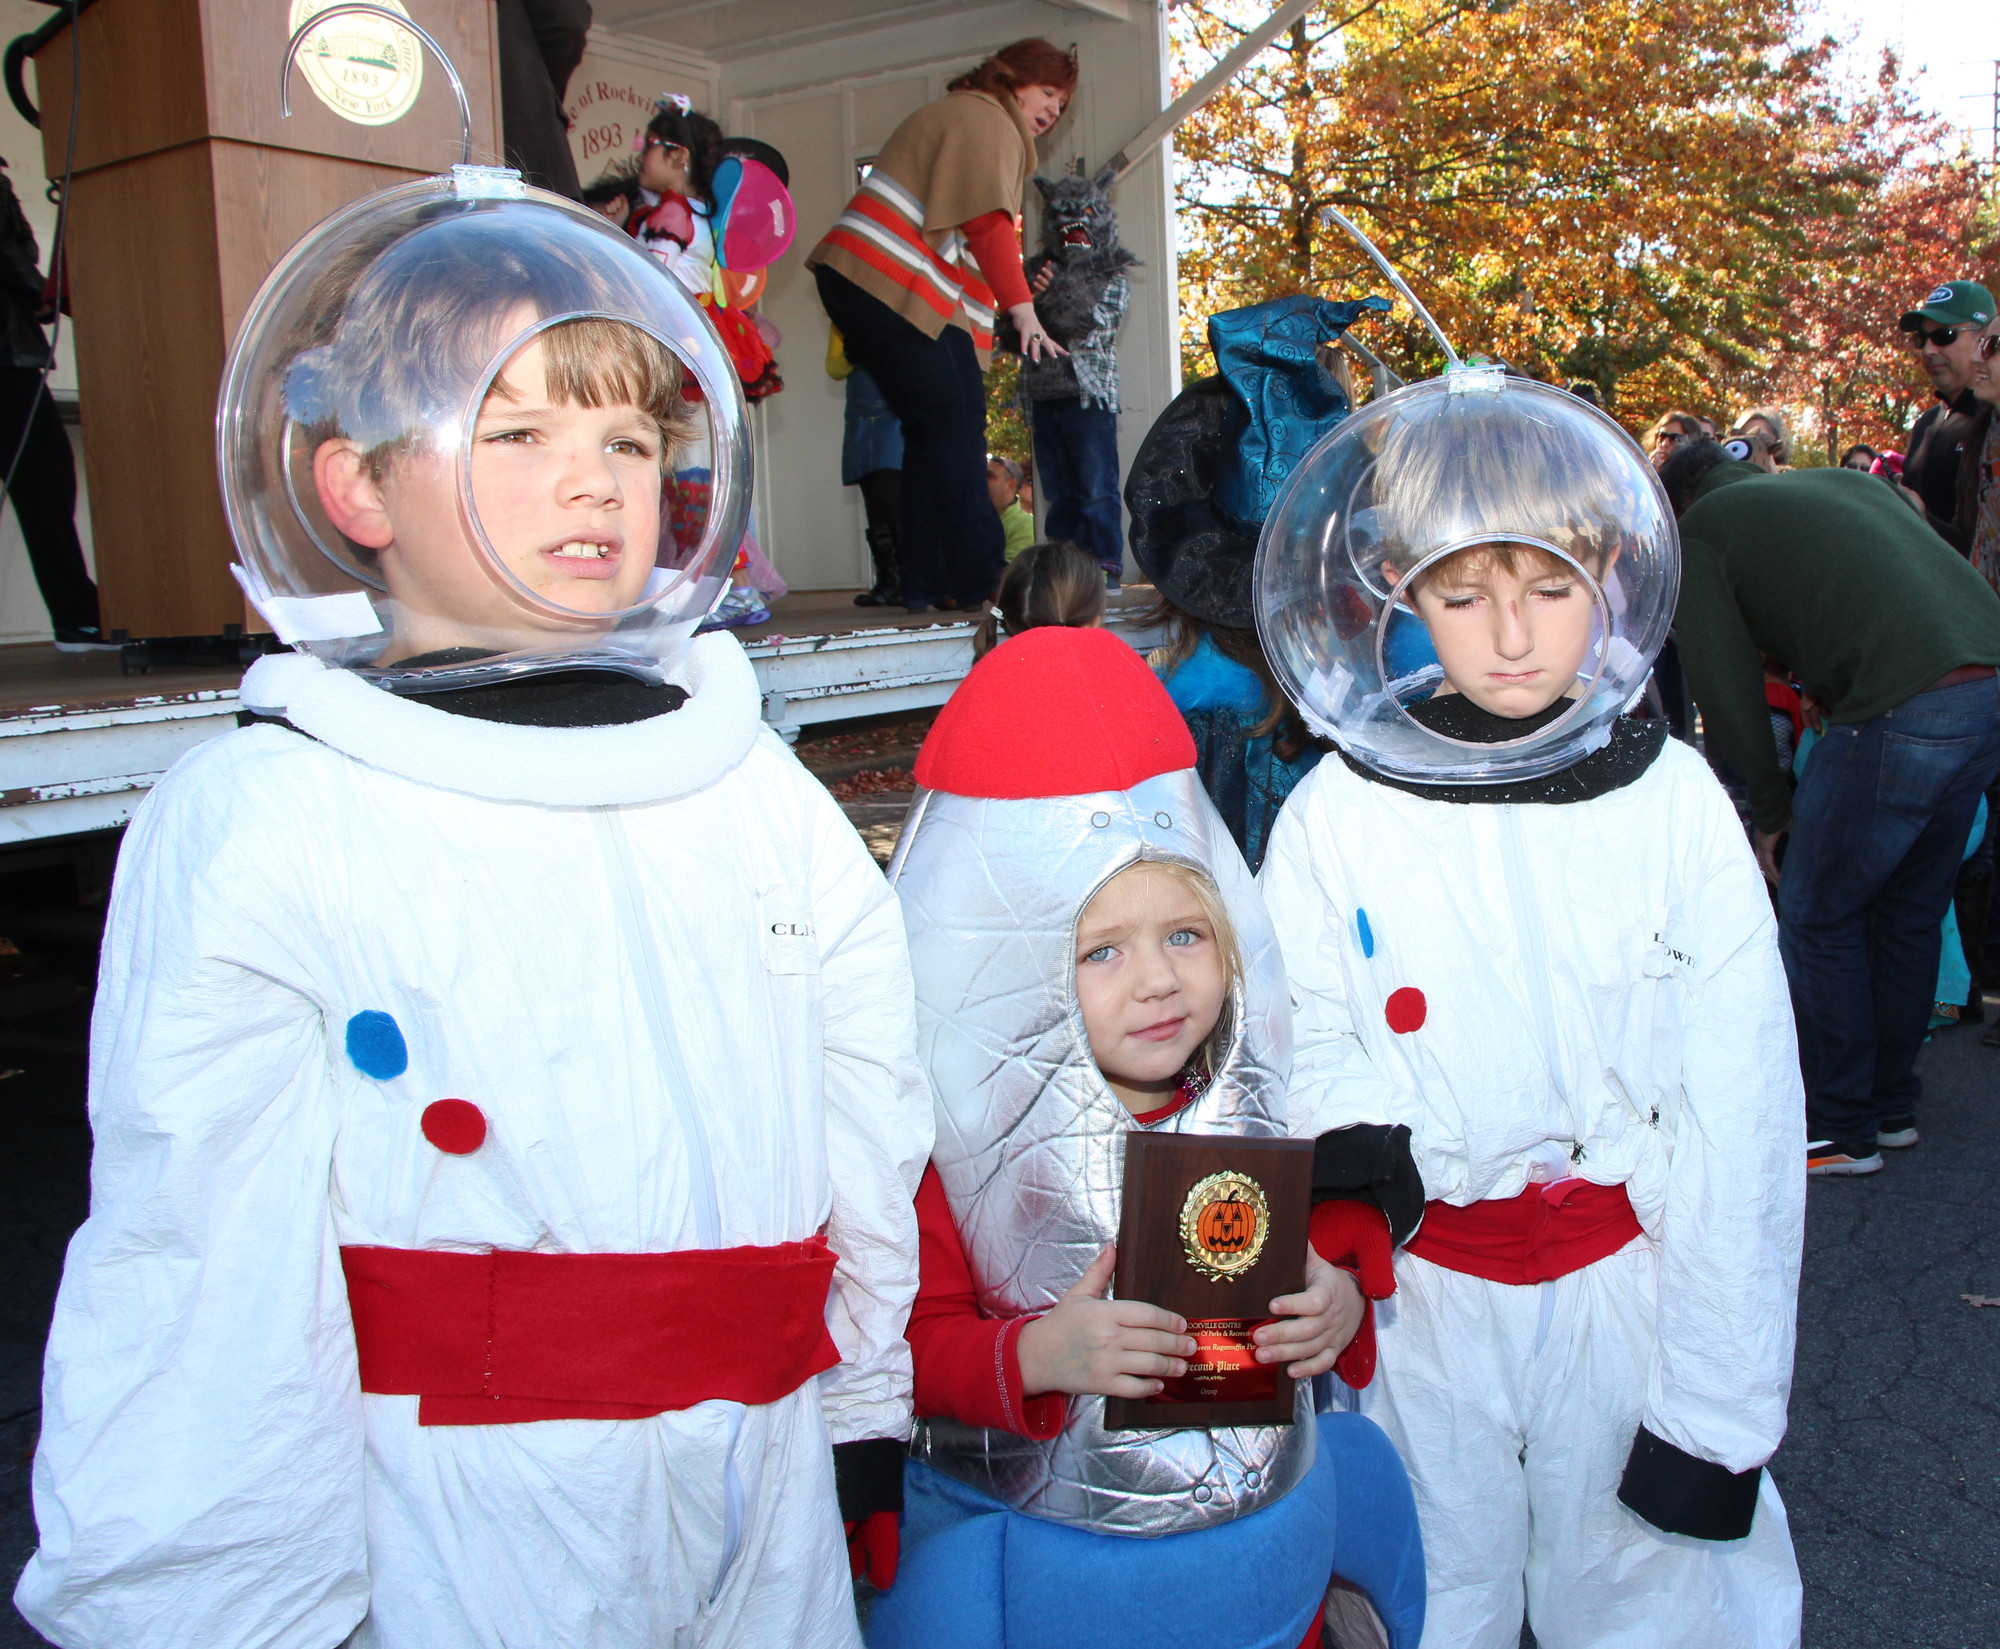 These astronauts and their little spaceship received an award for their creative costumes.